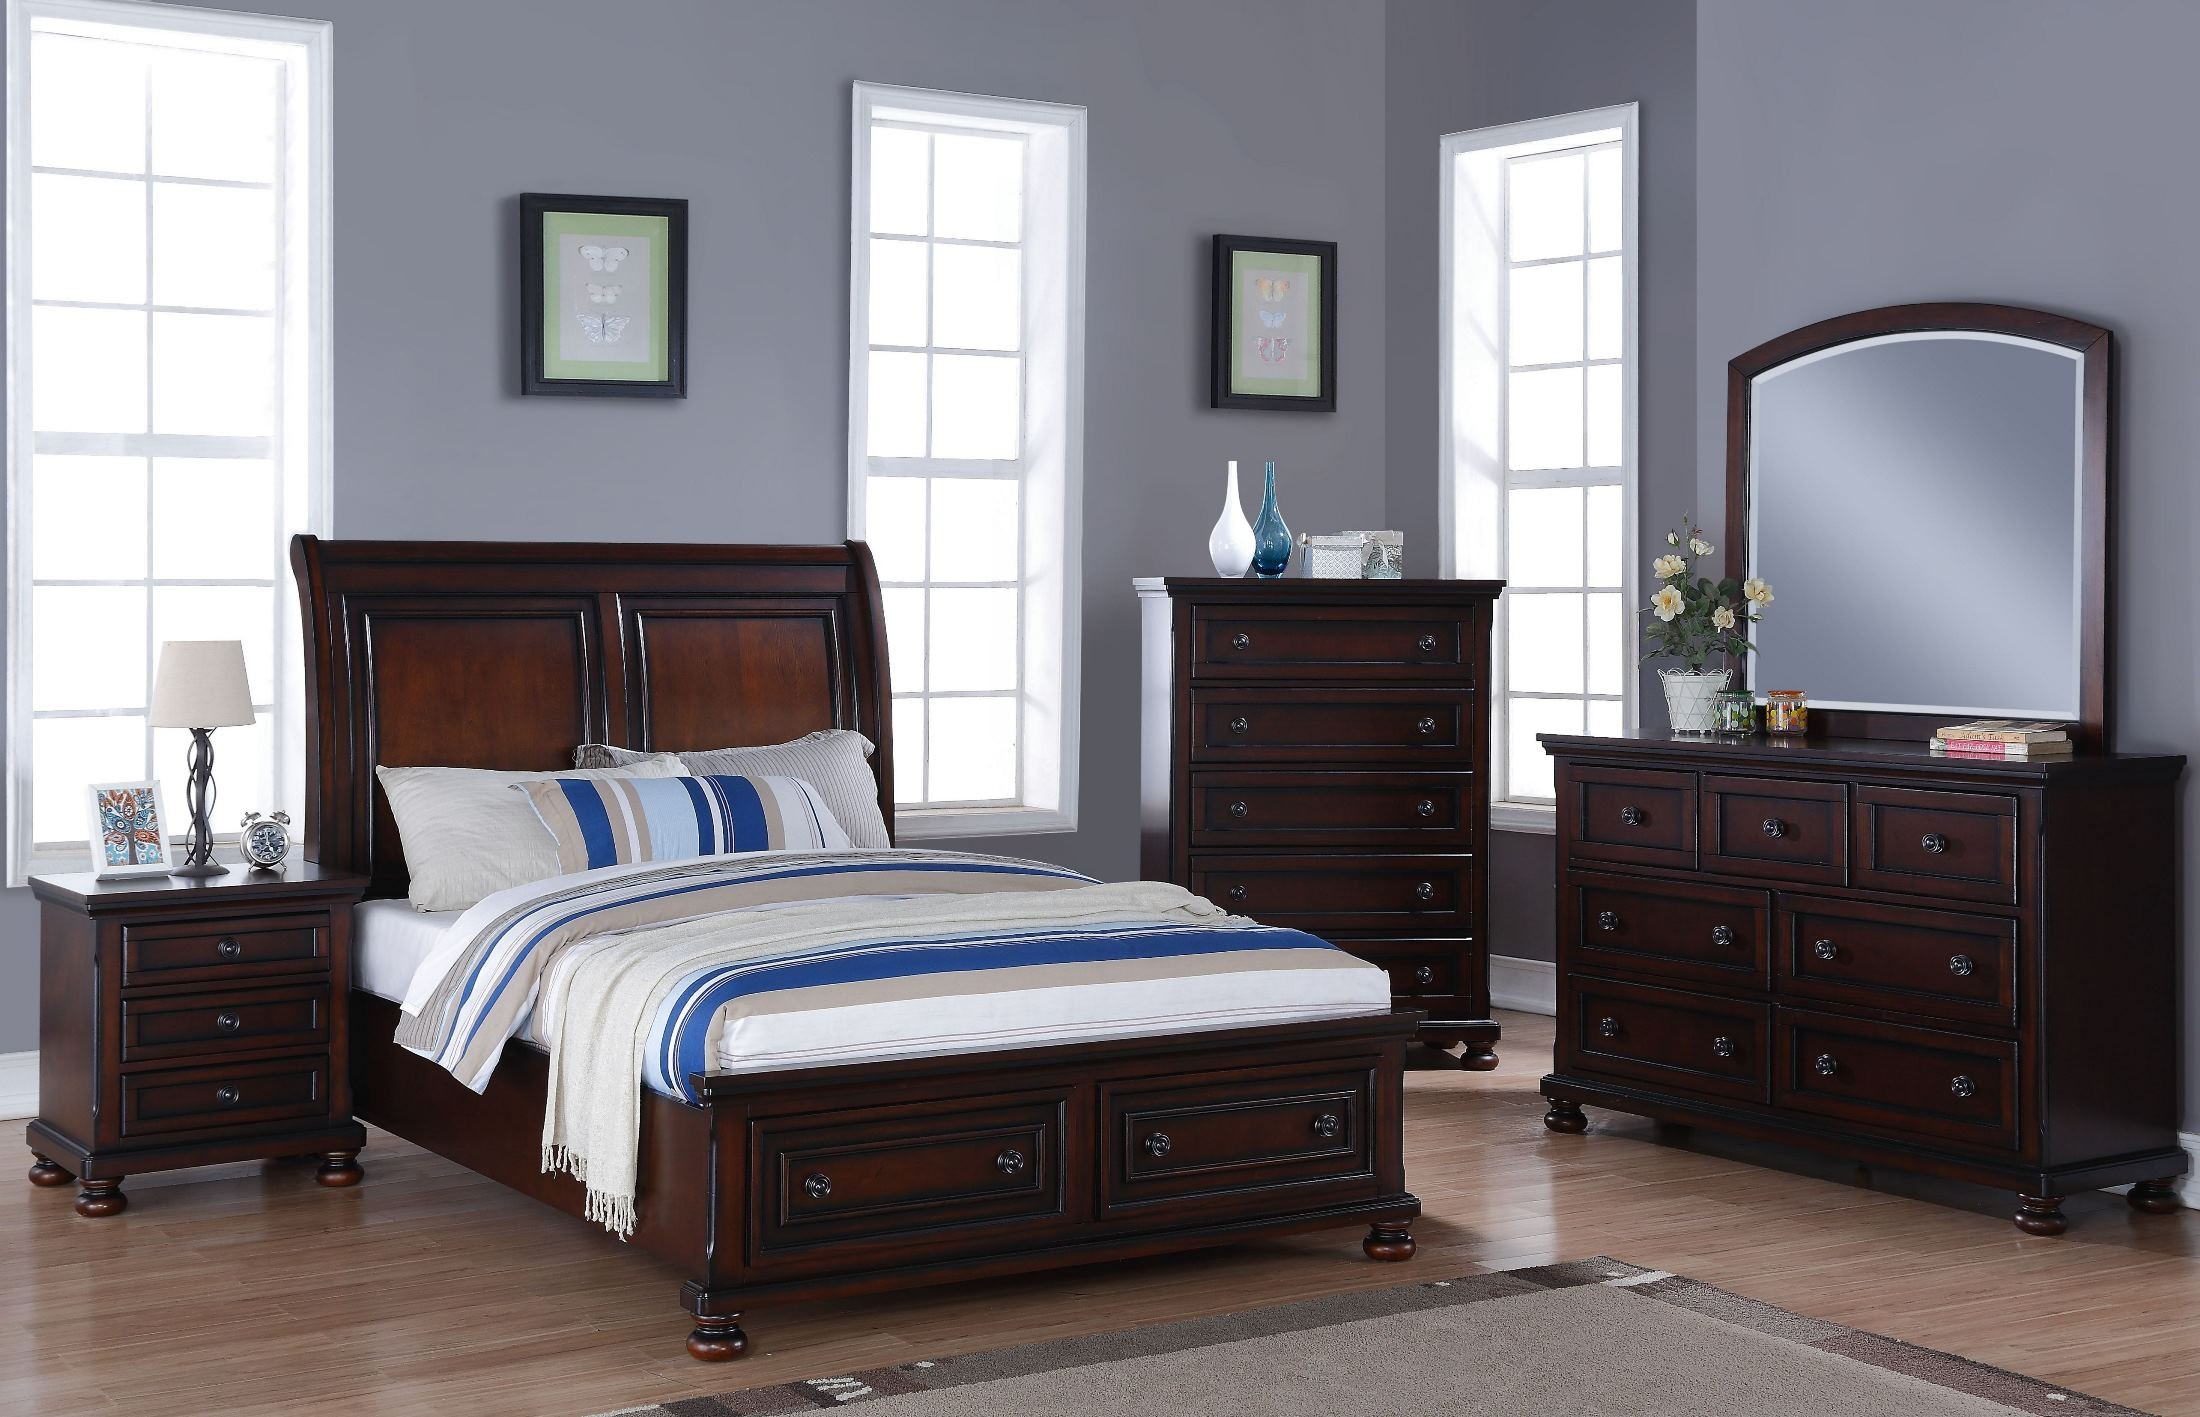 Jesse Master Cherry Brown Storage Bedroom Set From New Classic Coleman Furniture